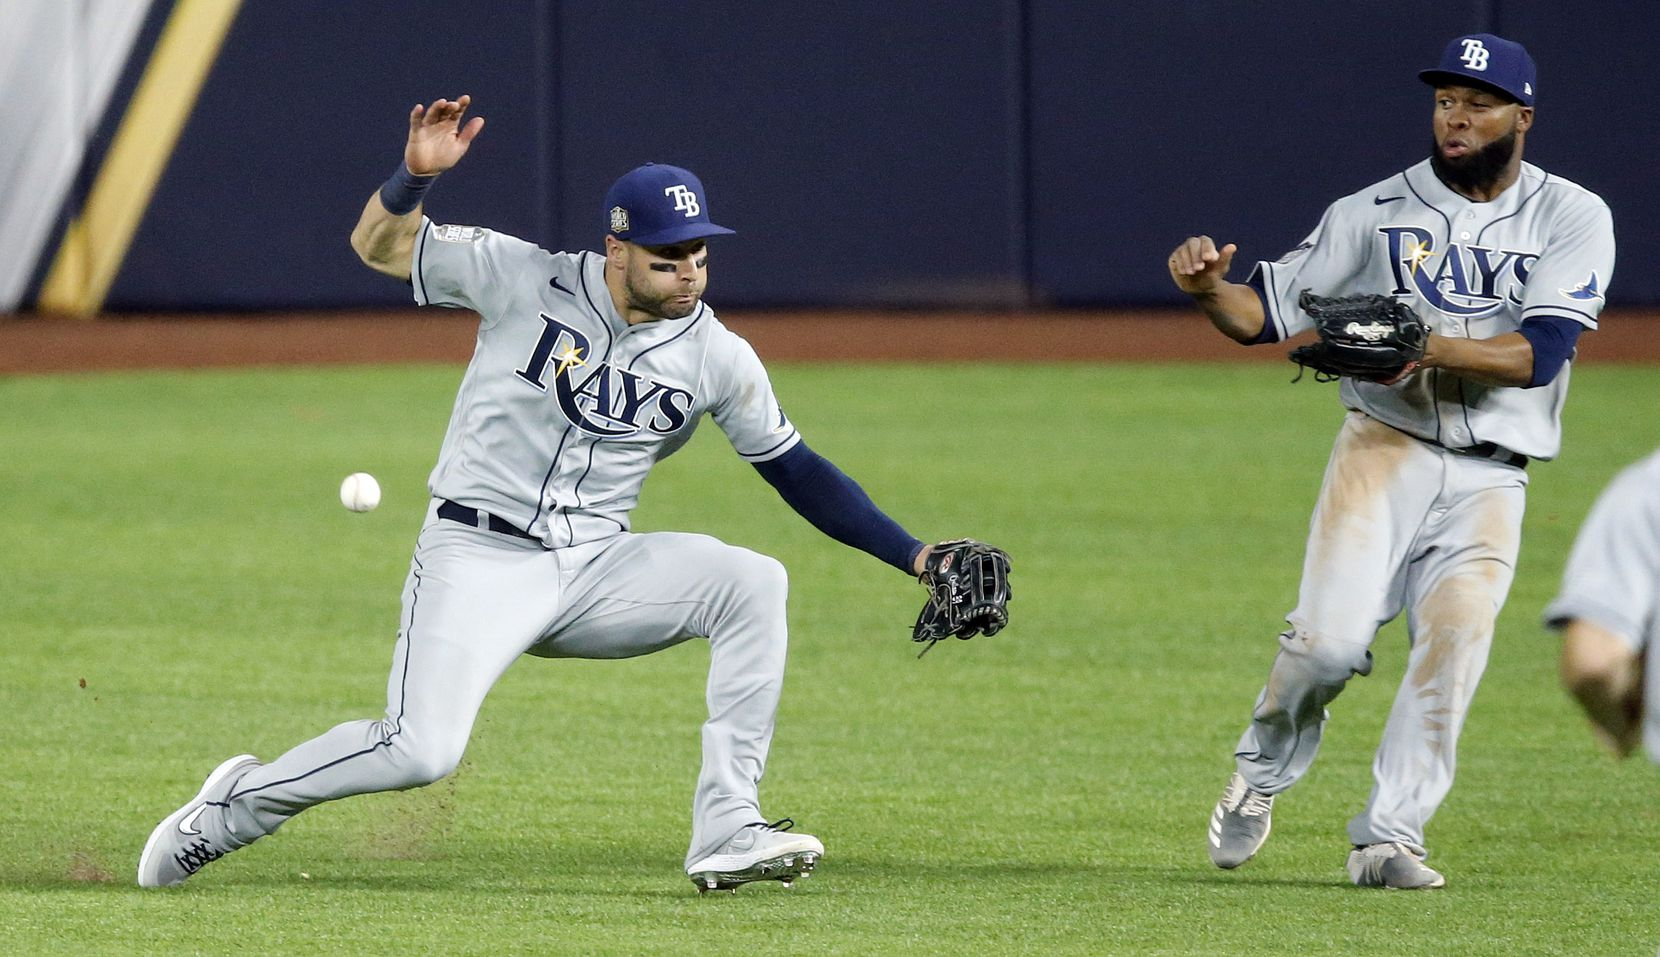 Tampa Bay Rays center fielder Kevin Kiermaier (left) almost collides with right fielder Manuel Margot (right) as he attempted to catch Los Angeles Dodgers Justin Turner's double during the eighth inning in Game 2 of the World Series at Globe Life Field in Arlington, Wednesday, October 21, 2020. (Tom Fox/The Dallas Morning News)